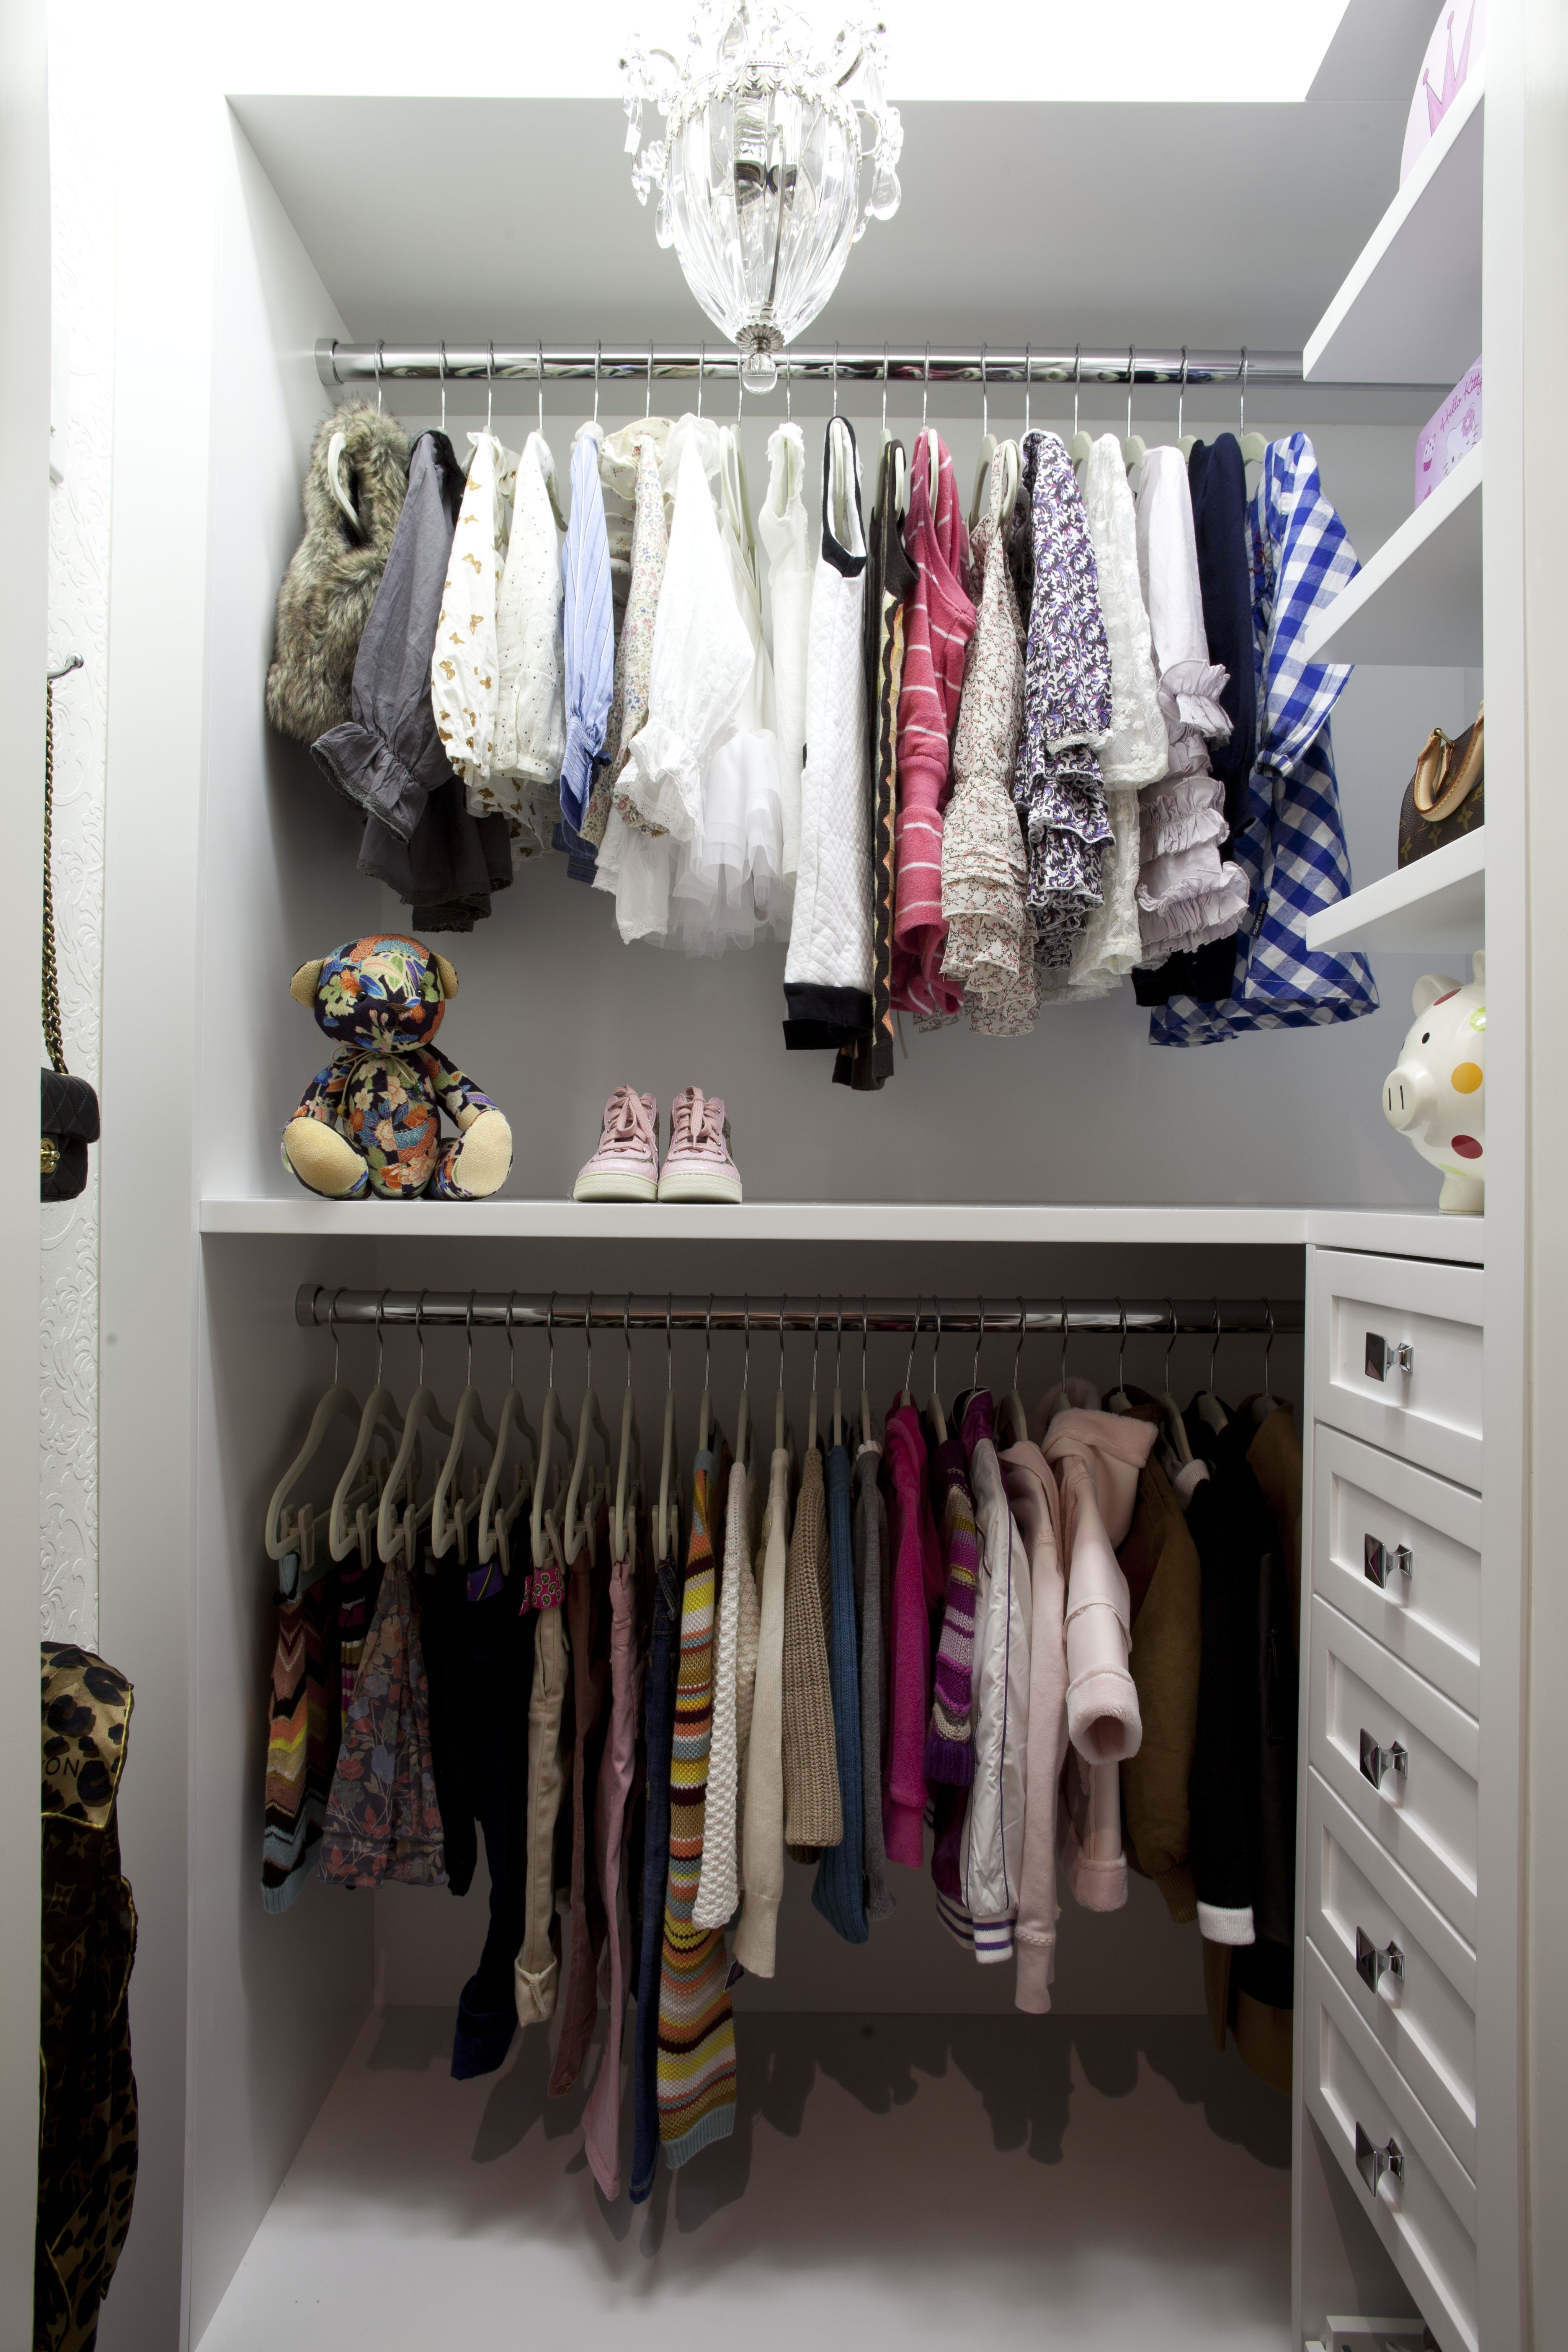 artwork additional kids photos if img organizing space organized children closets have folded adding items wardrobe s or shelving keepsakes for shoes family spaces you closet simplicity blog can make